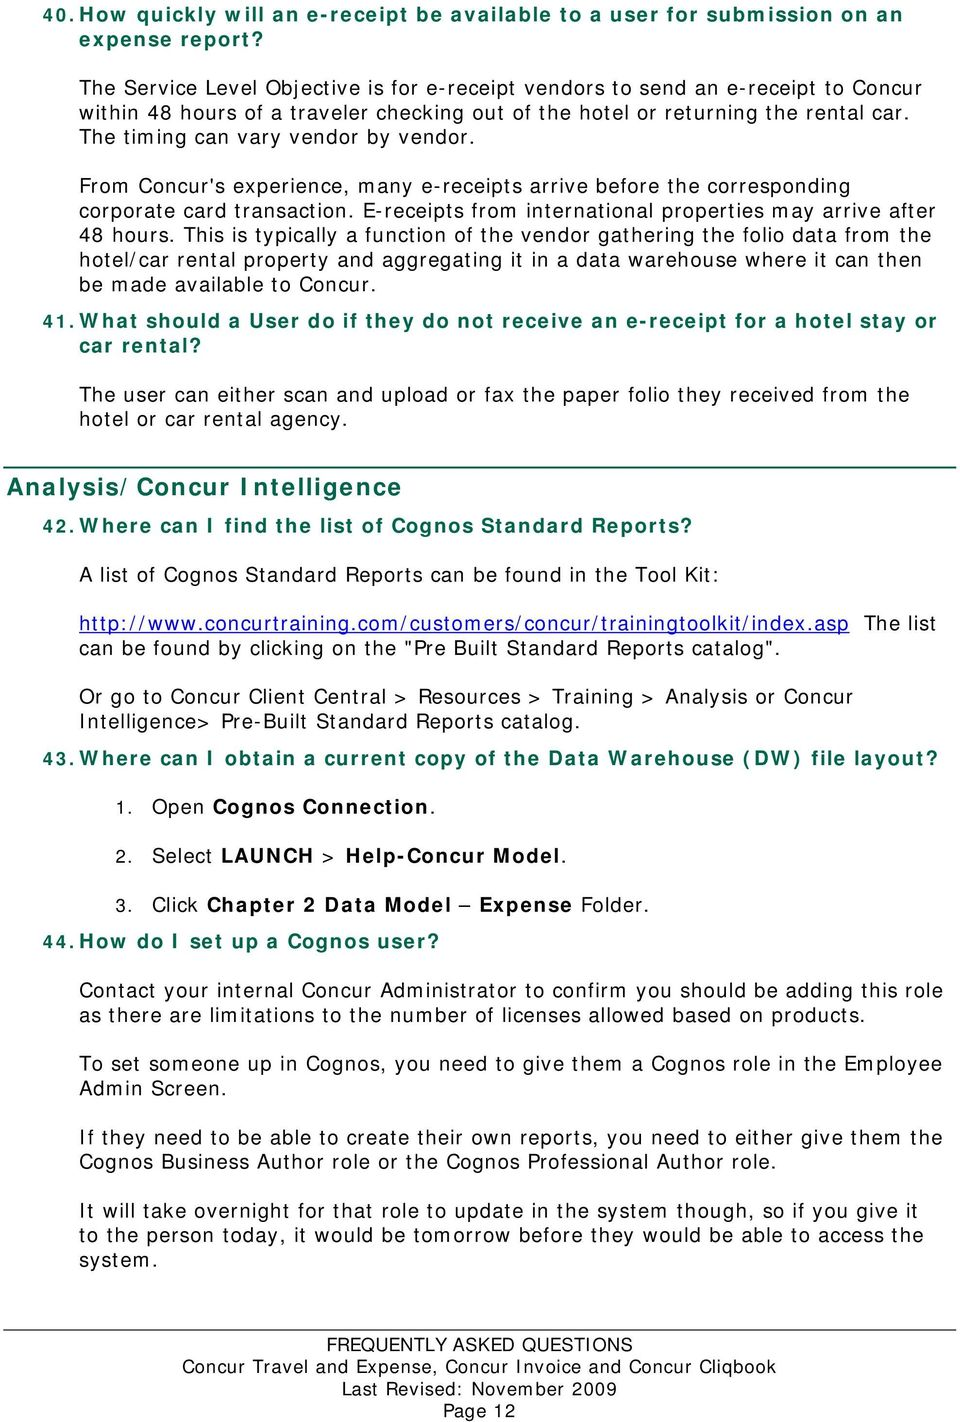 FREQUENTLY ASKED QUESTIONS  Concur Travel and Expense, Concur